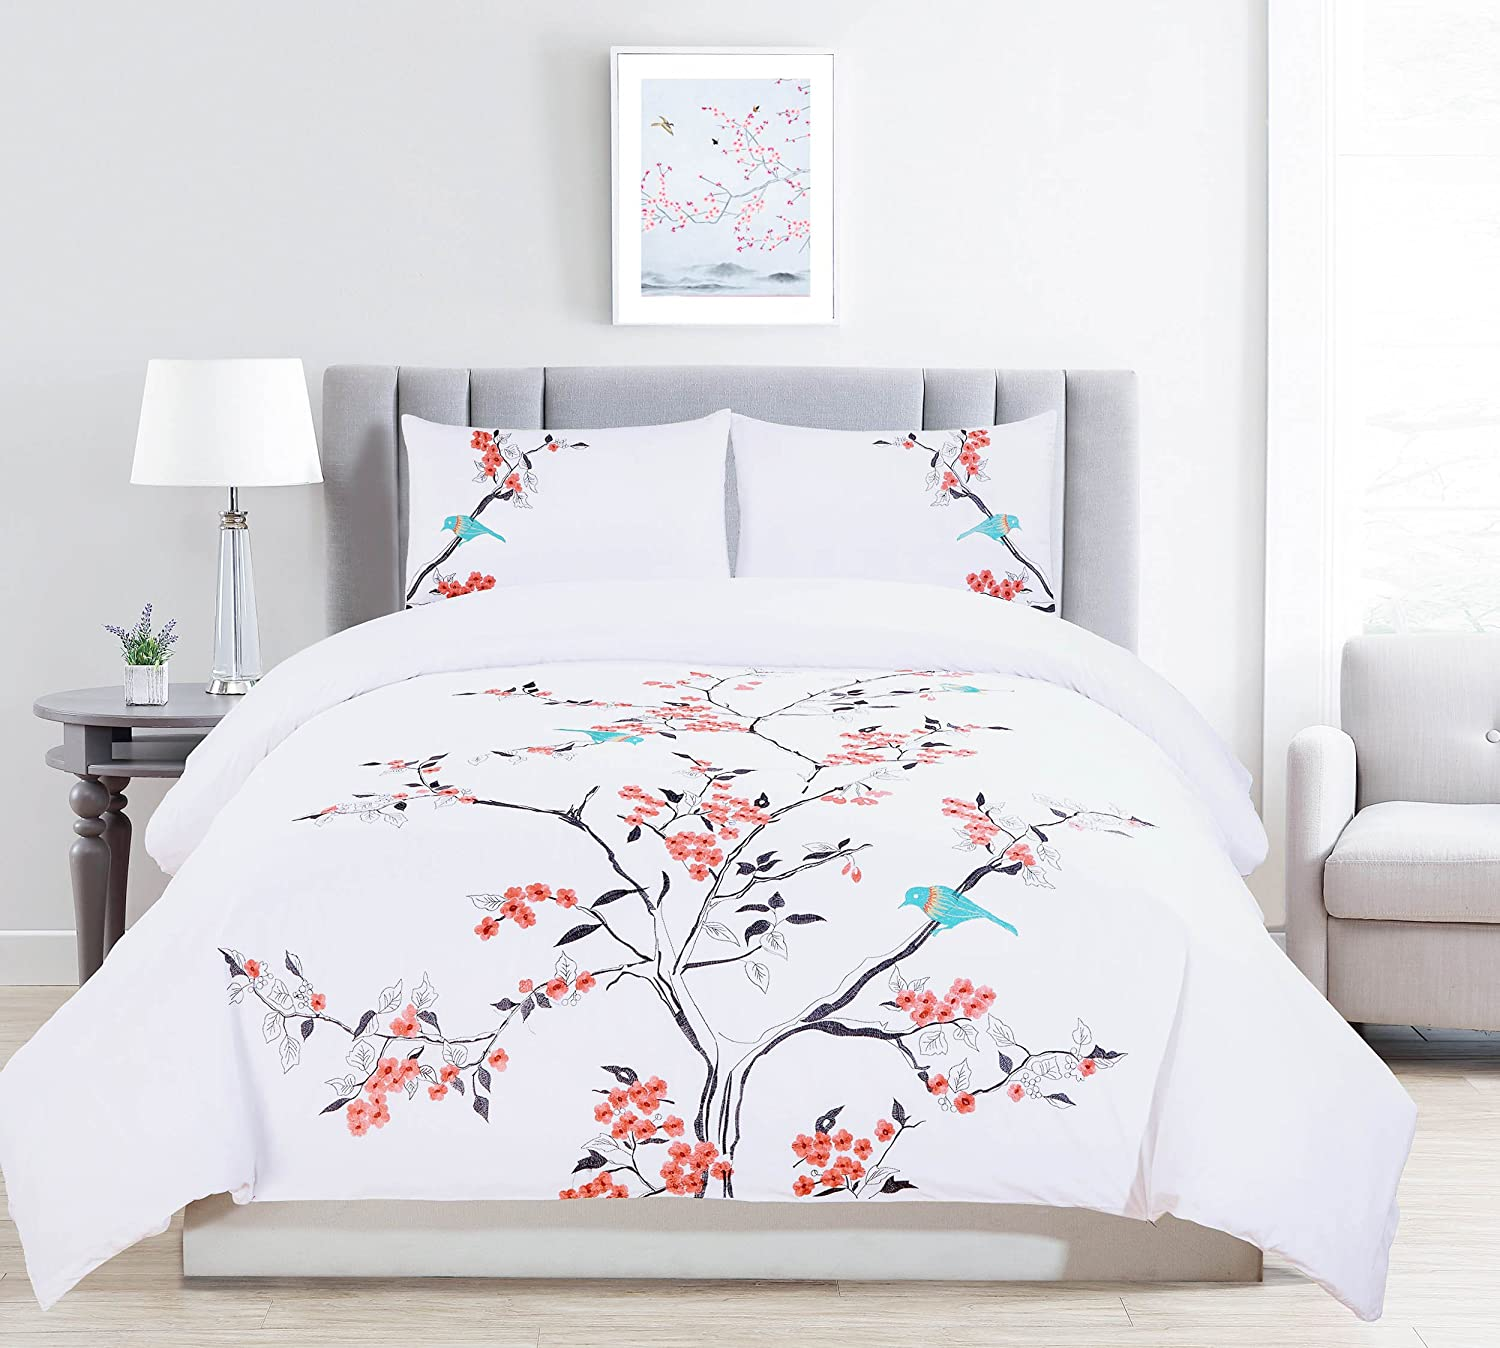 Superior Cherry Garden 100% Cotton Duvet Cover Set, King/California King